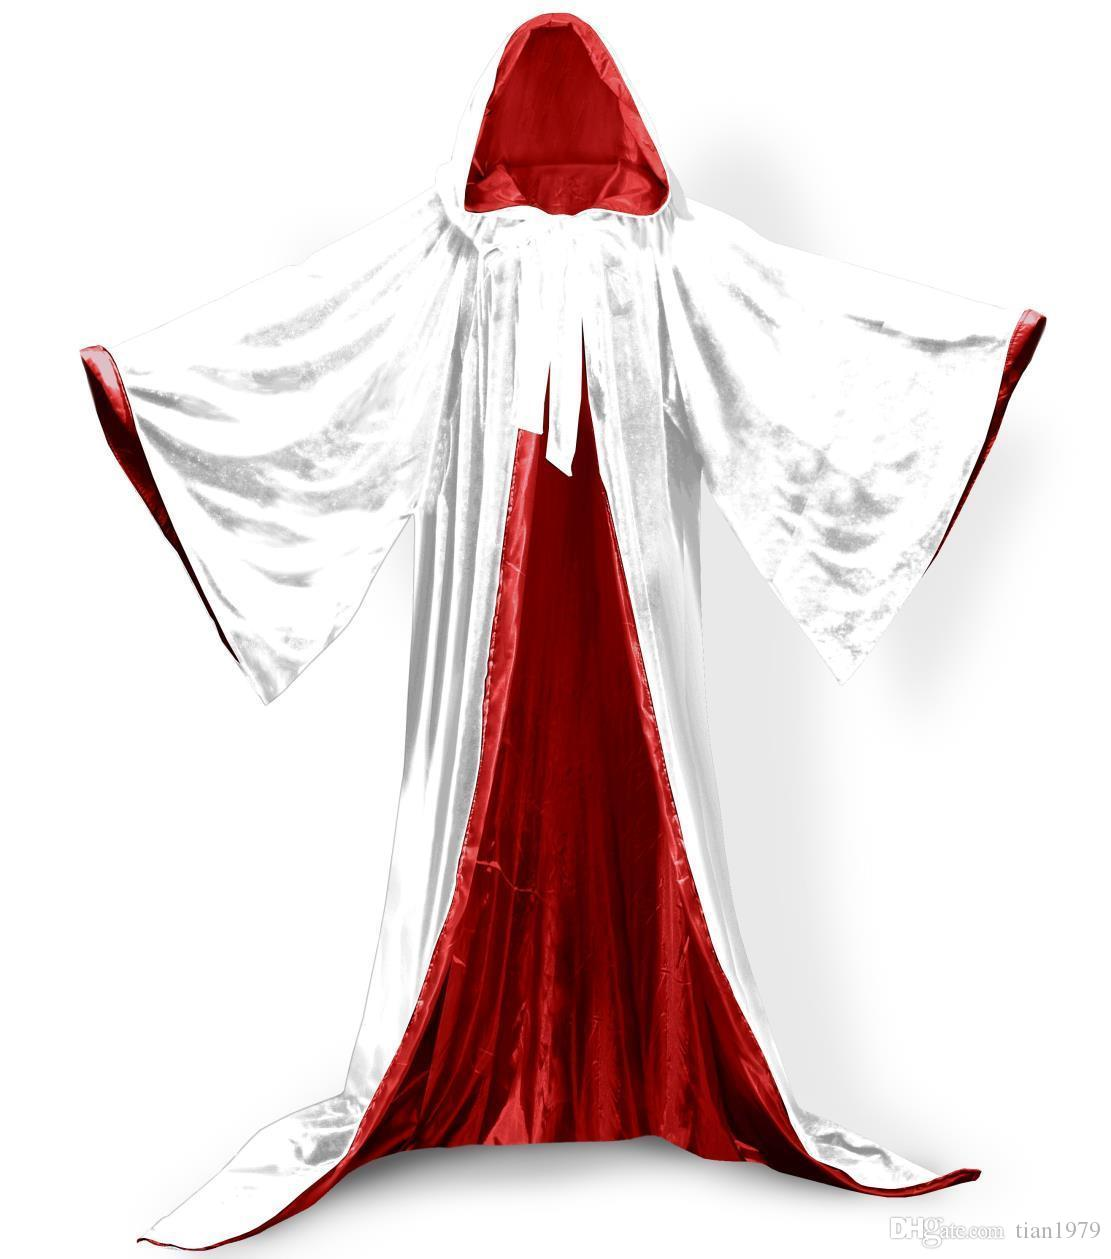 Wicca Christmas.2019 Long Sleeves Velvet Hooded Cloak Wedding Cape Halloween Wicca Christmas Hooded Witchcraft Cape Medieval Wicca Robe Kids Cosplay Dress From